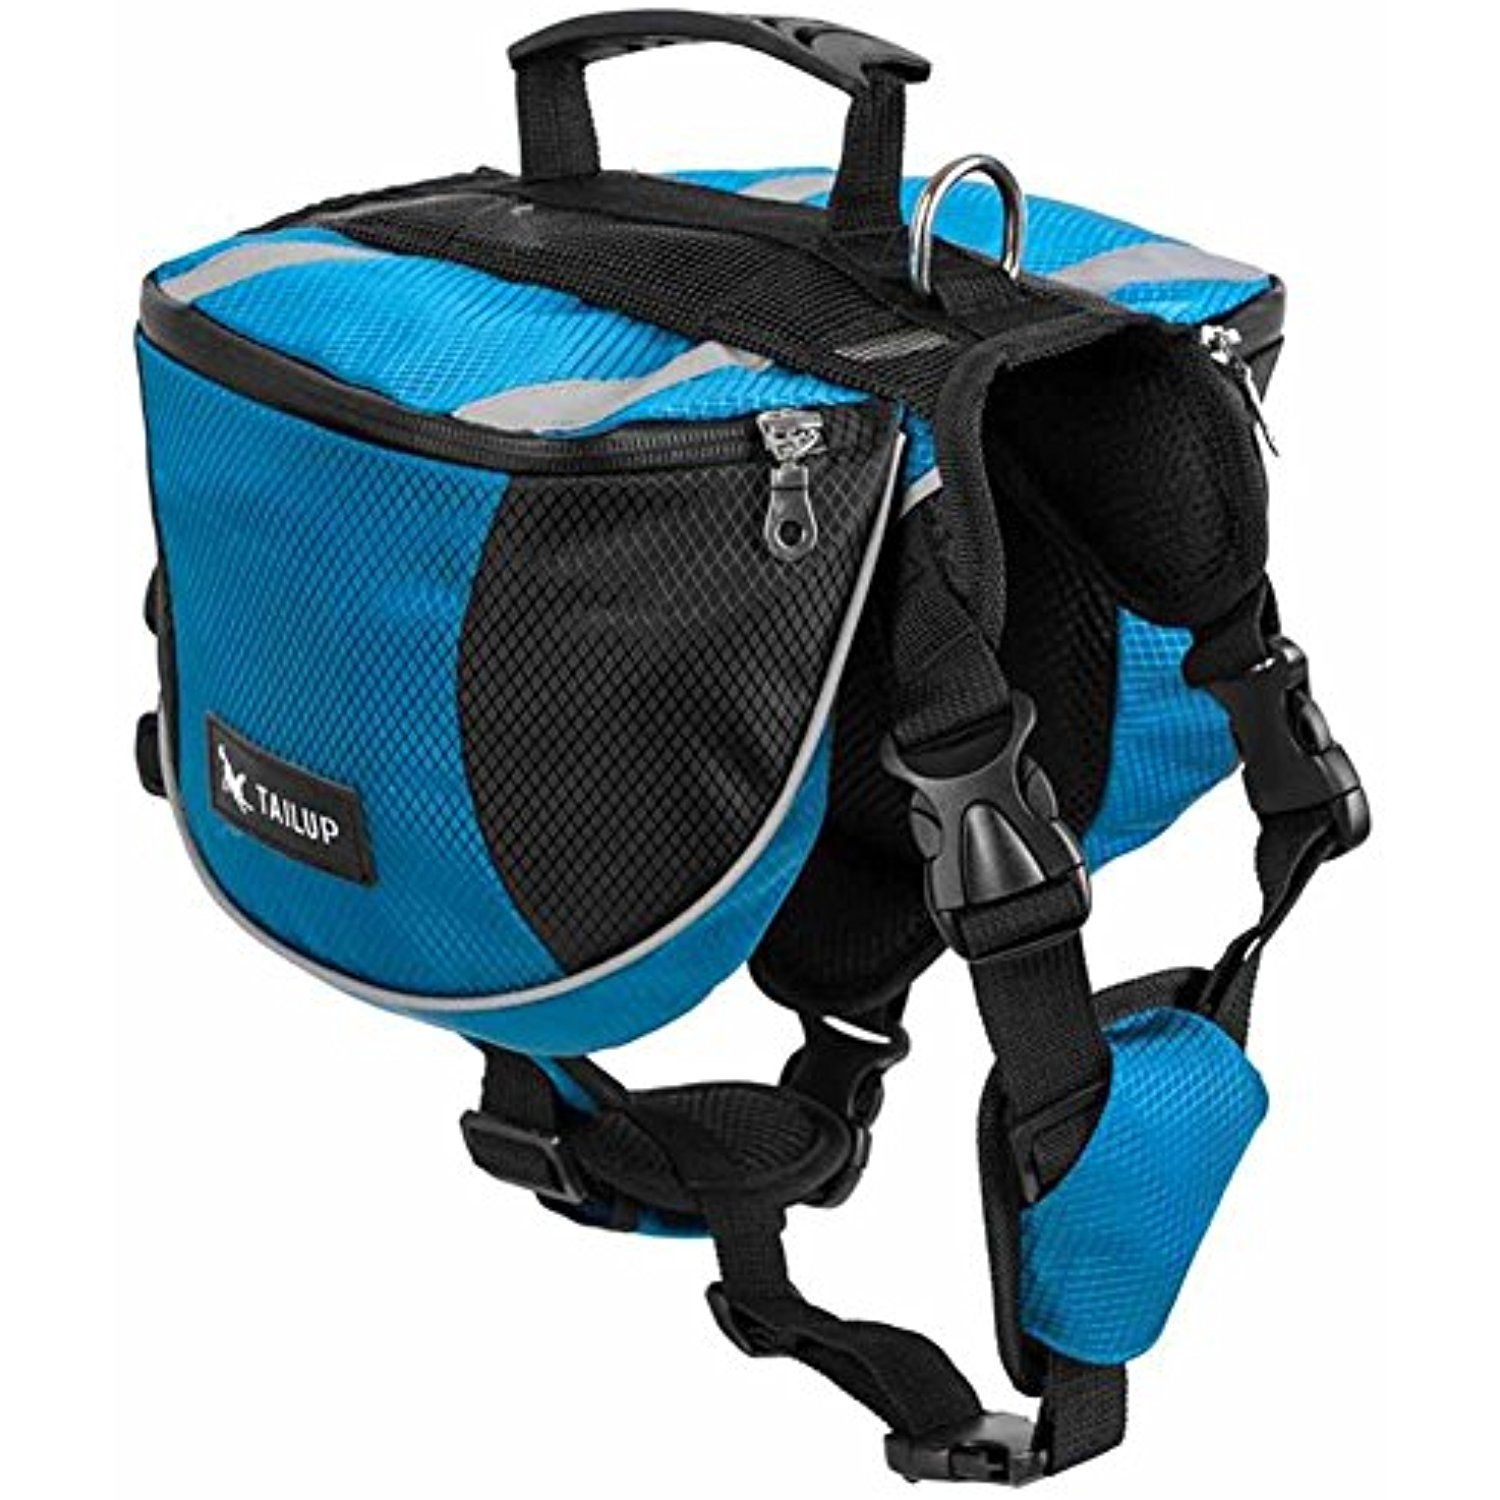 BUYITNOW Pet Backpack Medium Dog Adjustable Saddlebag